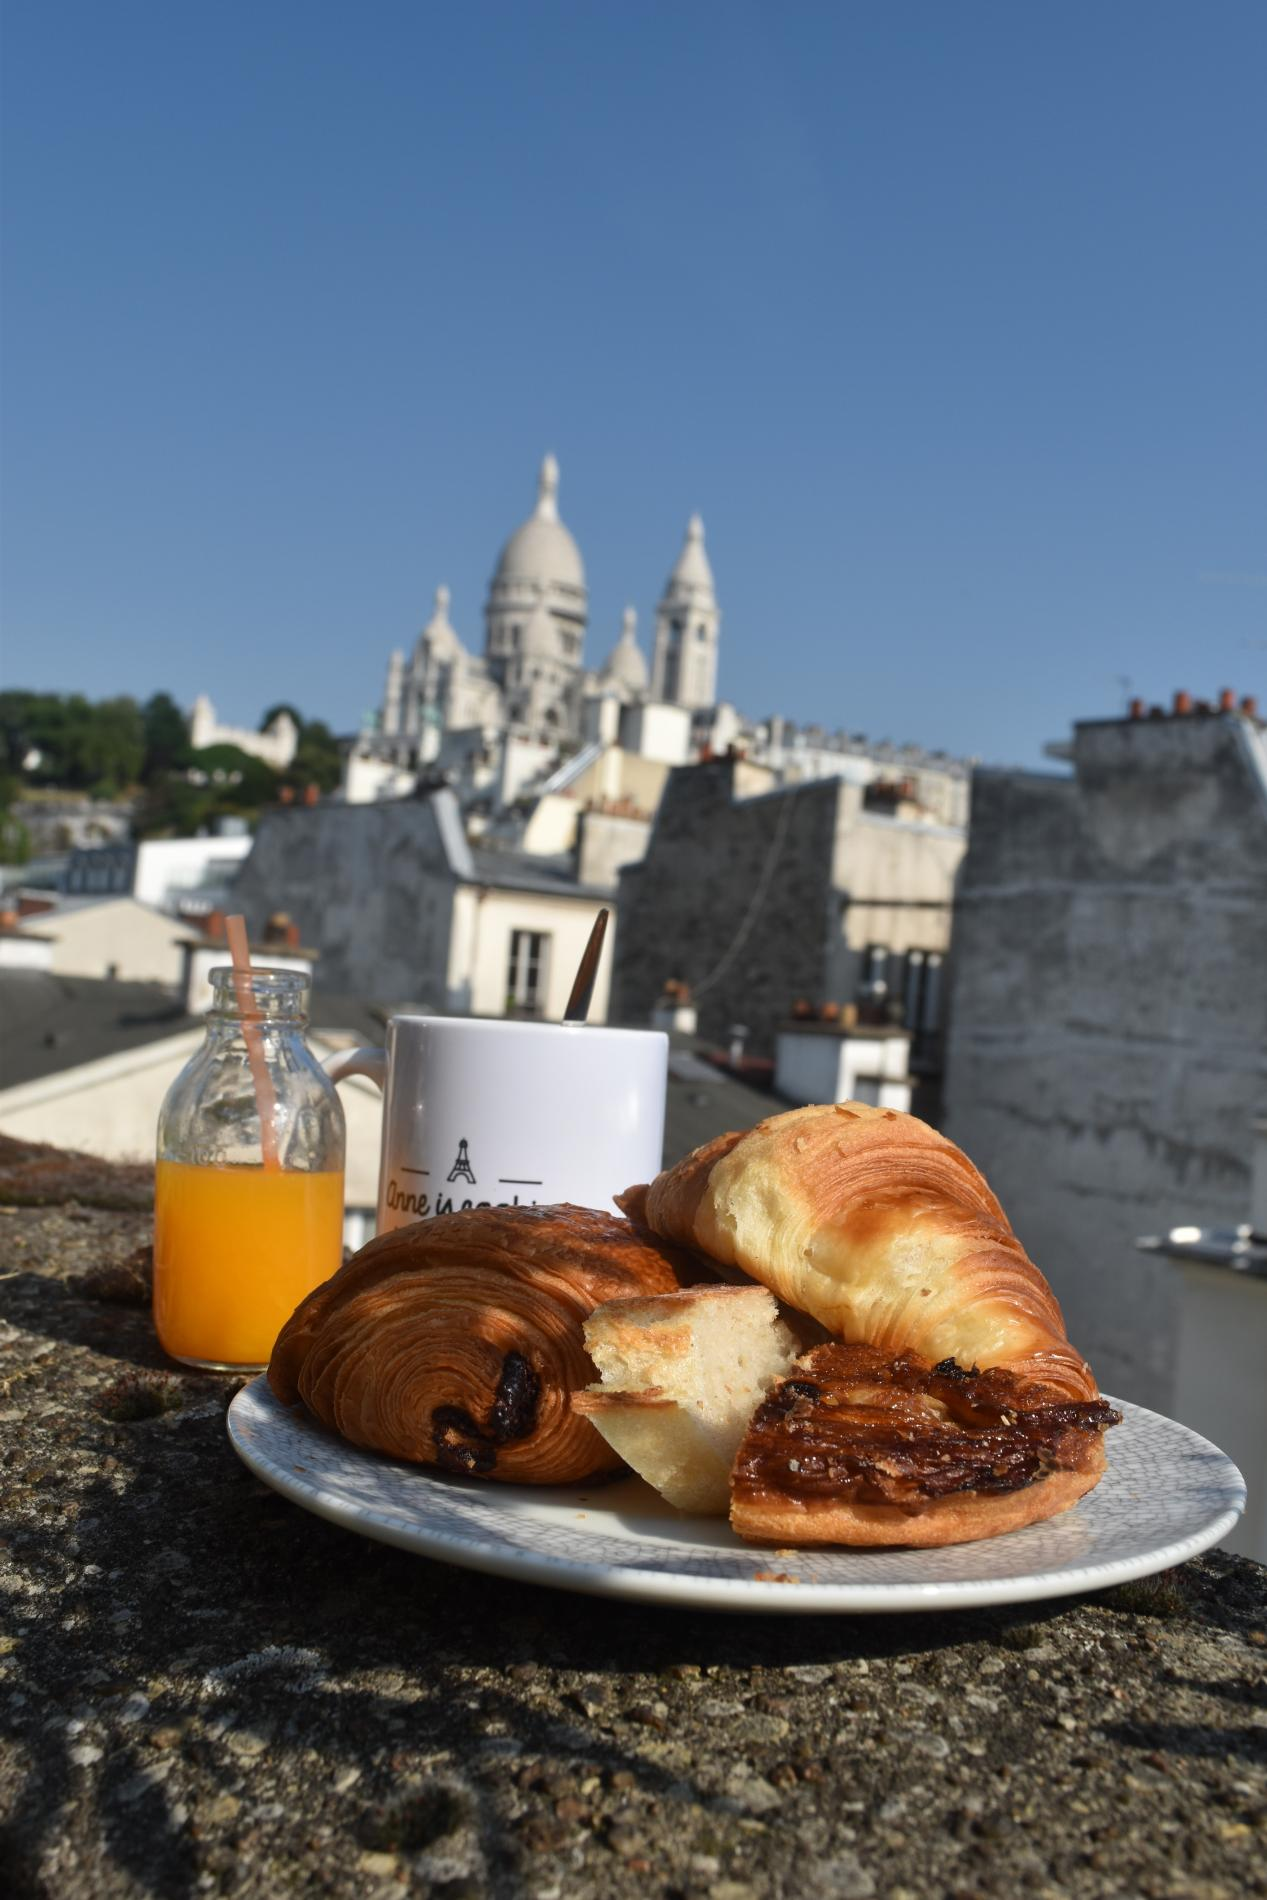 Typical French cuisine and view of Sacre Coeur Montmartre seen on teen travel program in Paris